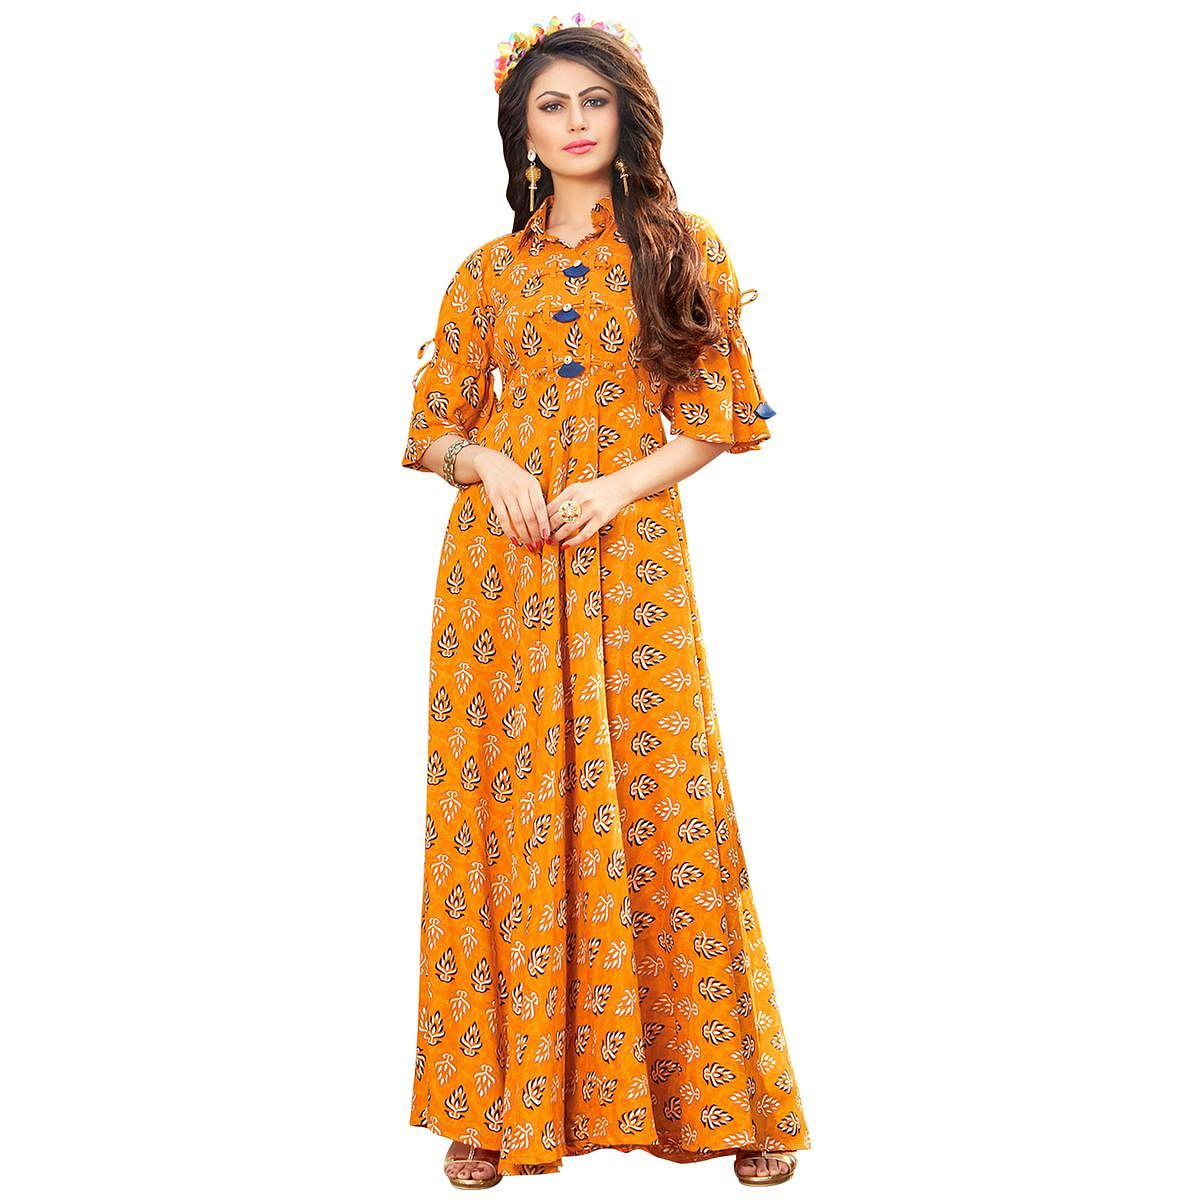 Stylish Orange Colored Printed Partywear Rayon Cotton Long Kurti